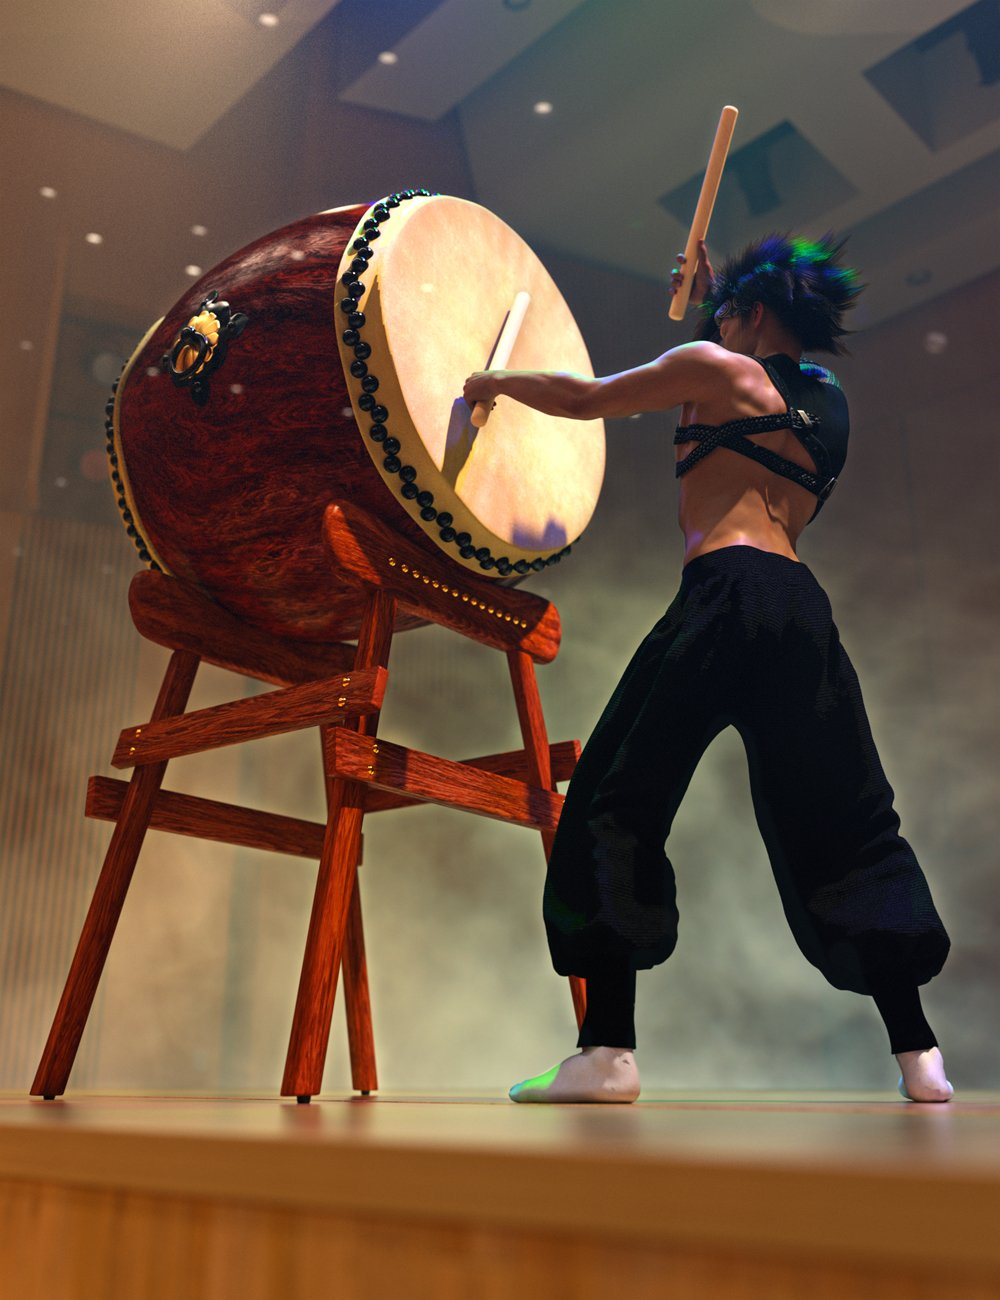 SBibb Taiko Props and Poses for Genesis 8 and 8.1 by: SBibb, 3D Models by Daz 3D